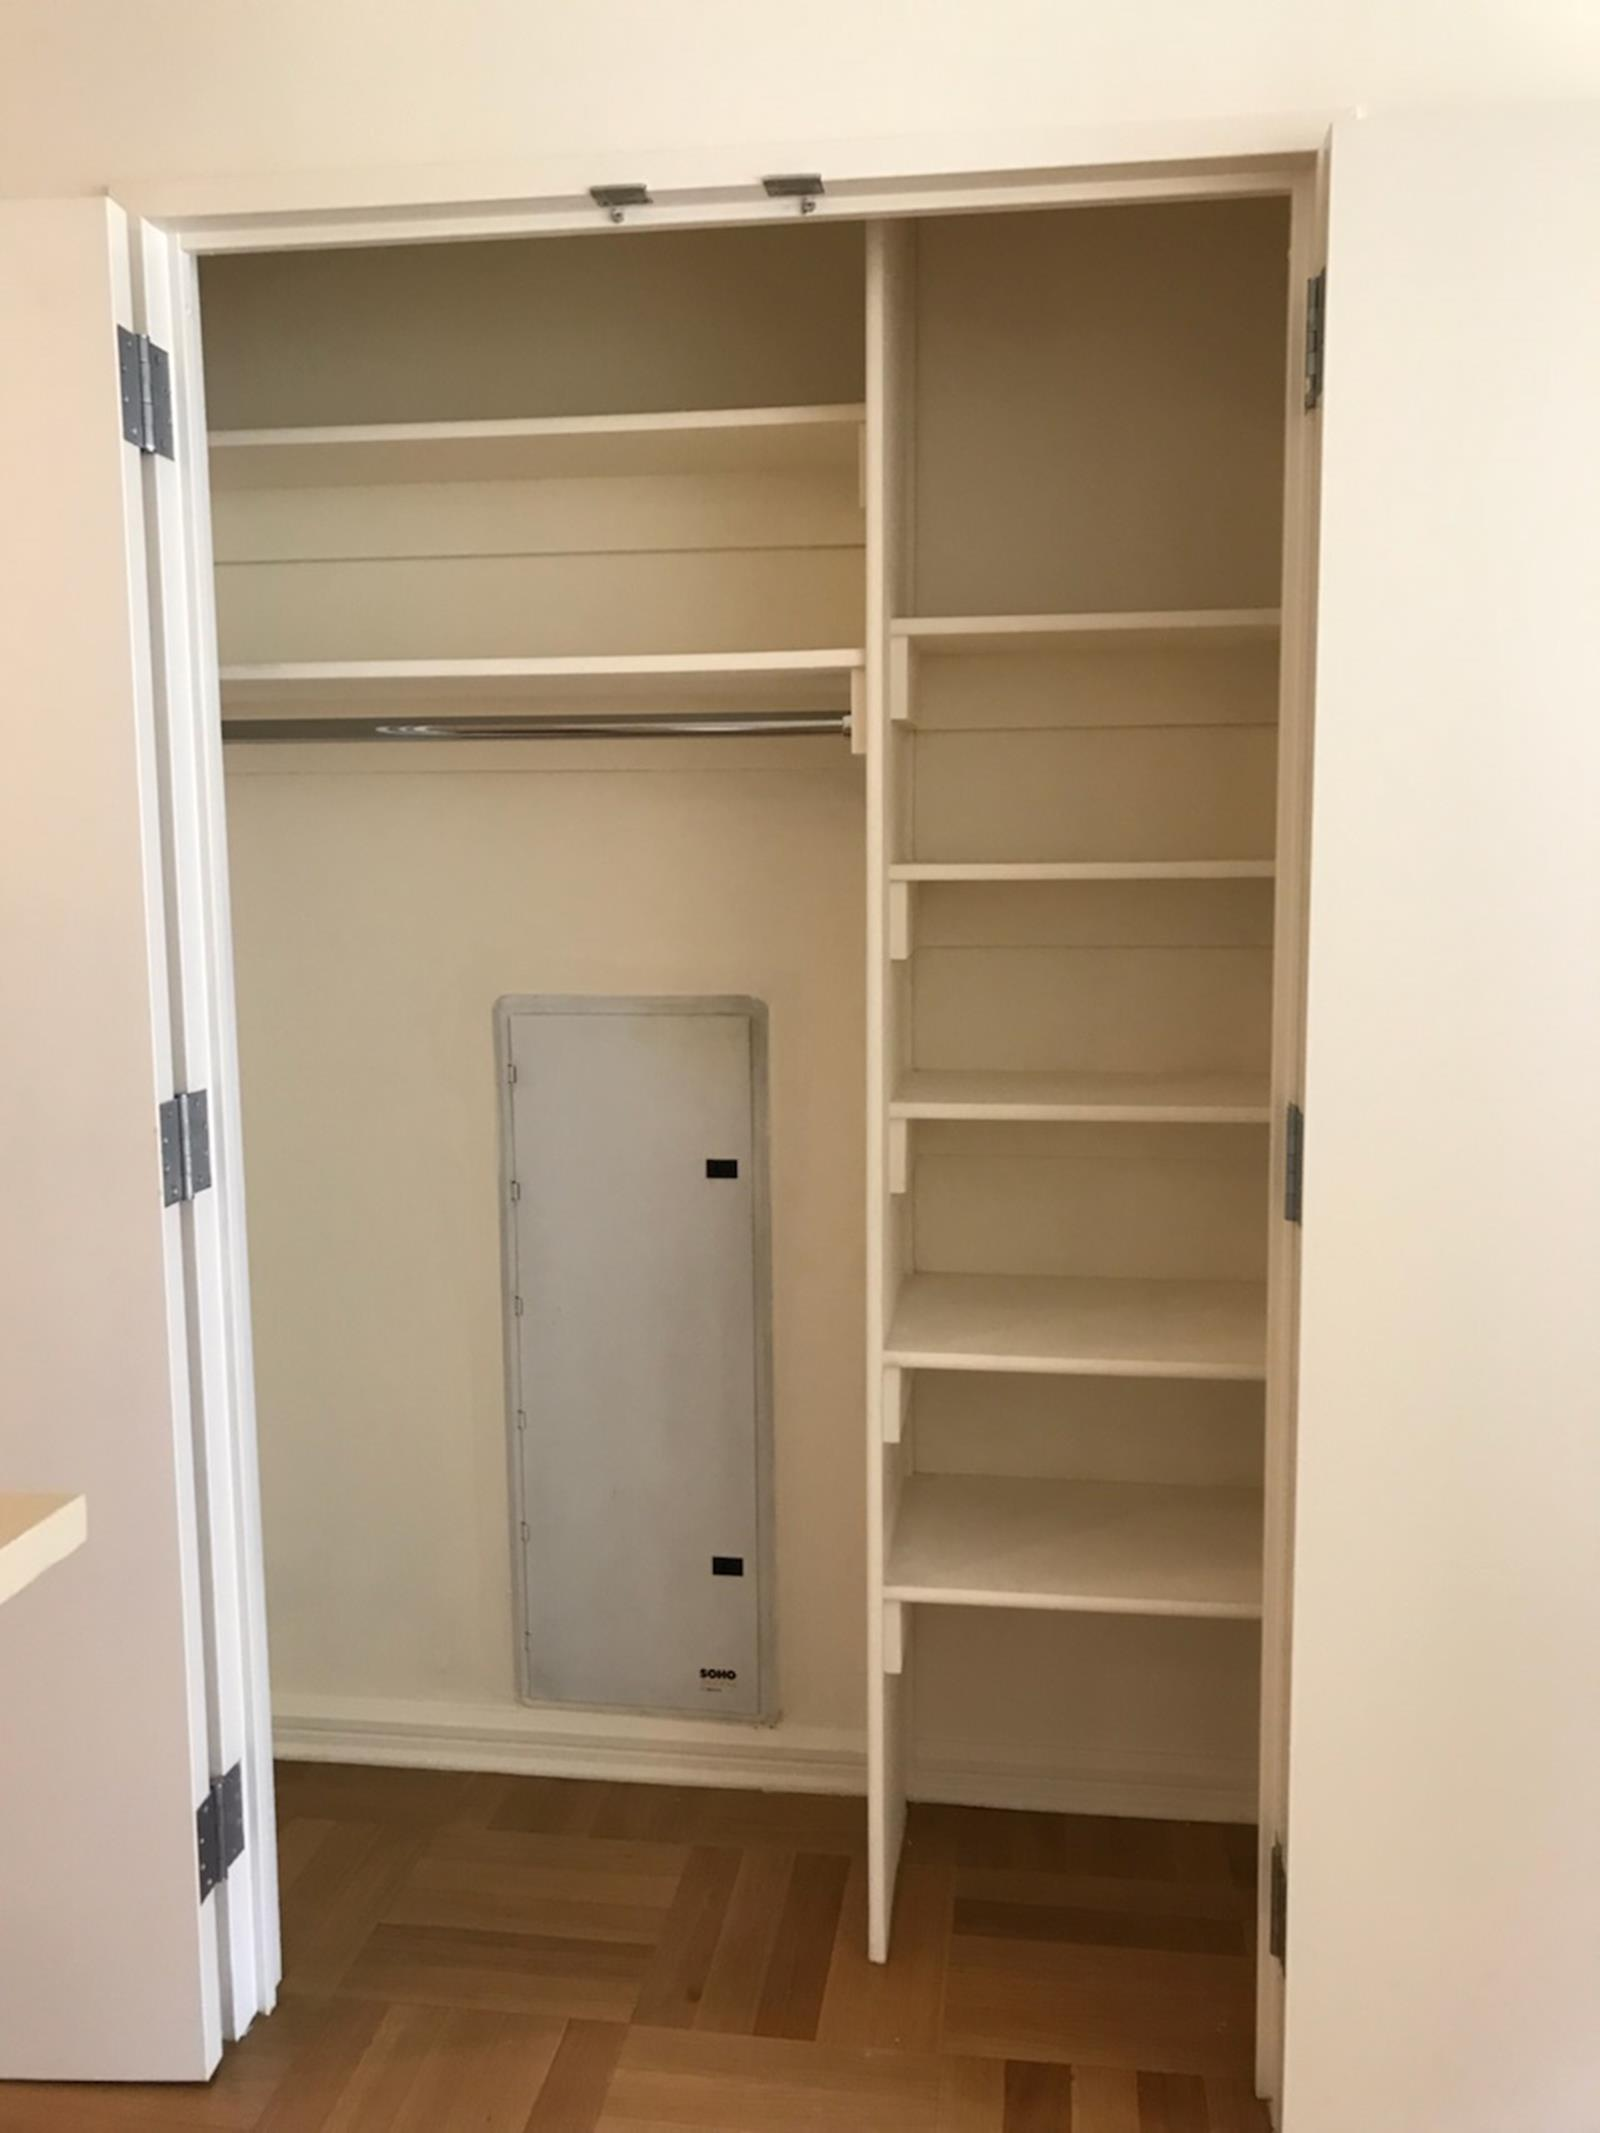 One bedroom - Lincoln Square